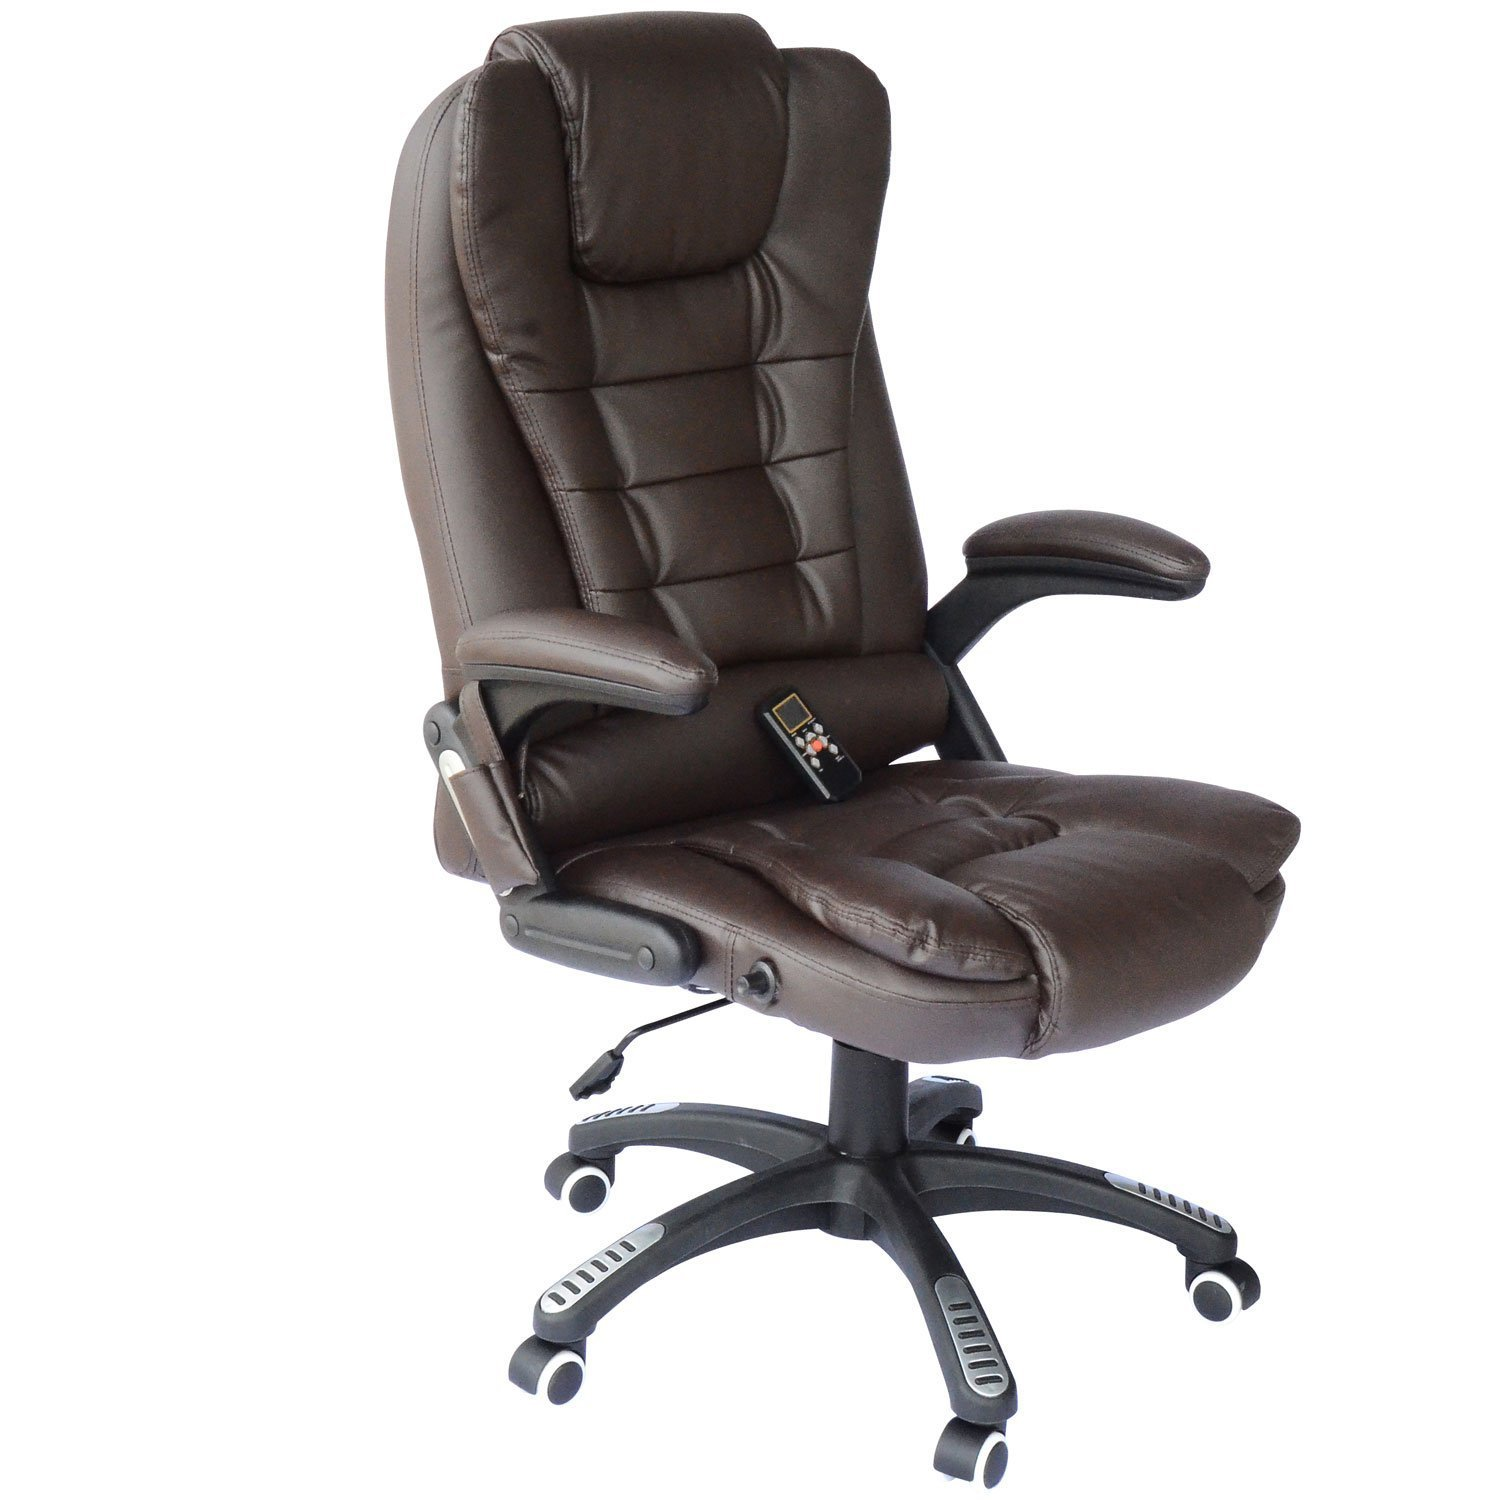 HOMCOM Adjustable Heated Ergonomic Massage Office Chair Swivel Vibrating High Back Leather Executive Chair Home Office Furniture (Brown) Aosom Canada